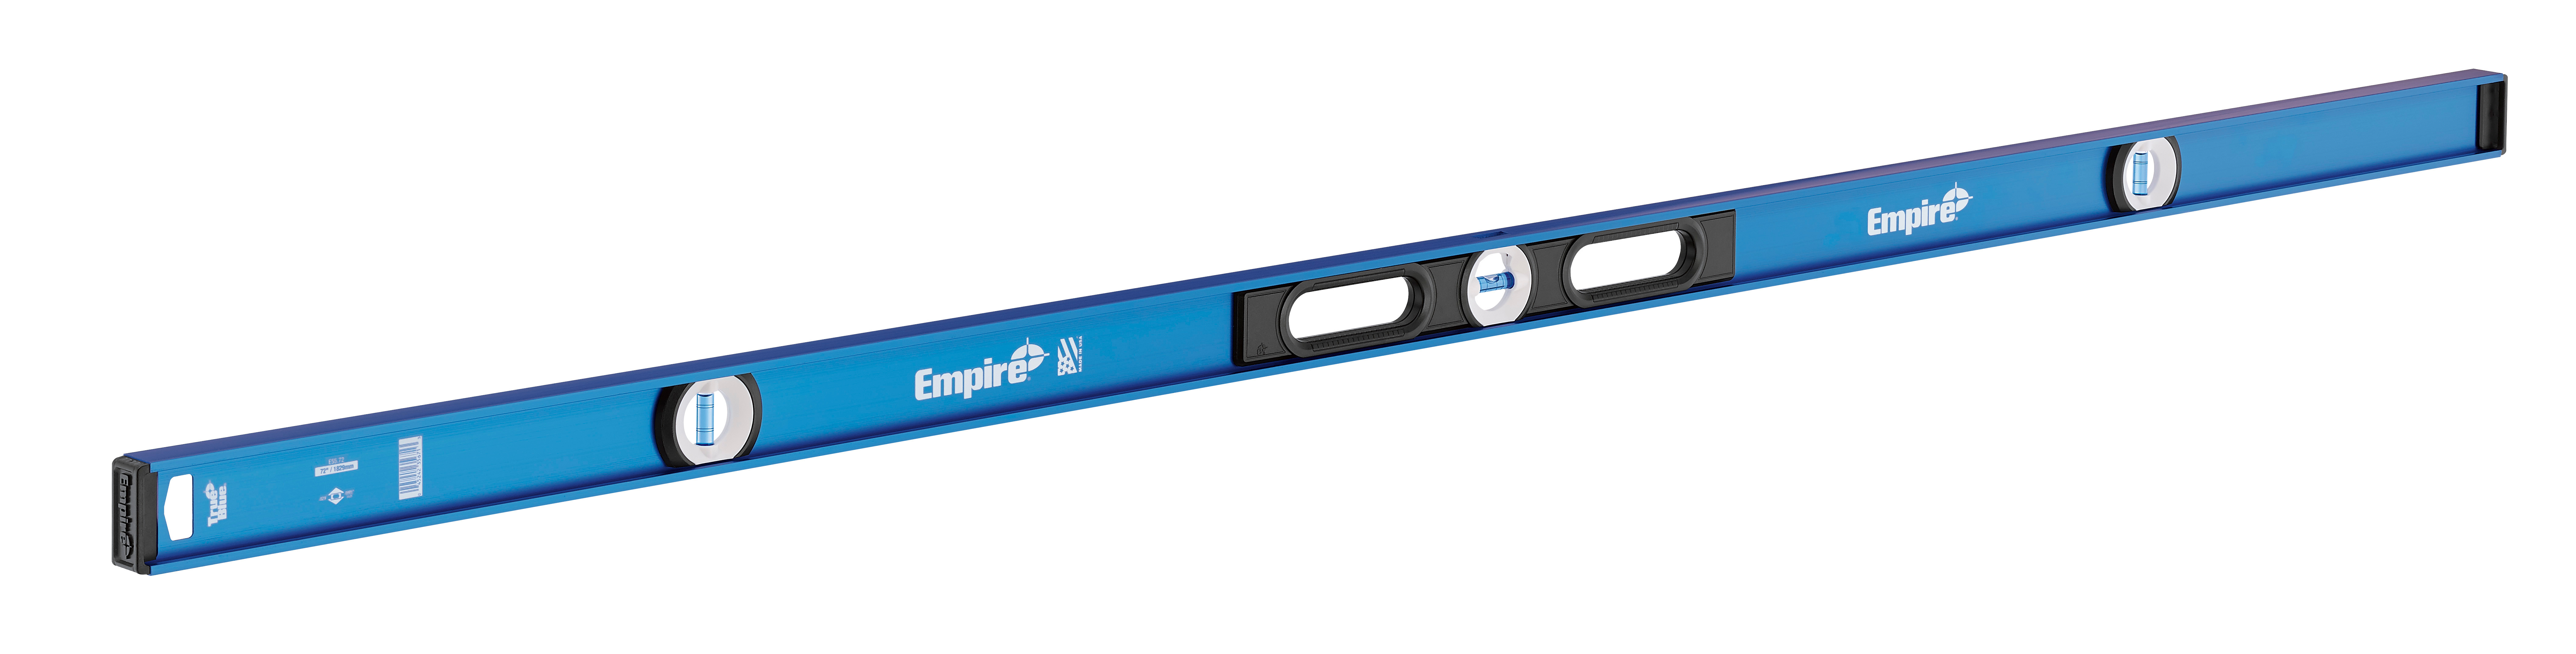 Milwaukee® Empire® TRUE BLUE® E55.72 Non-Magnetic I-Beam Level, 72 in L, 3 Vials, Aluminum, (1) Level, (2) Plumb Vial Position, 0.0005 in Accuracy